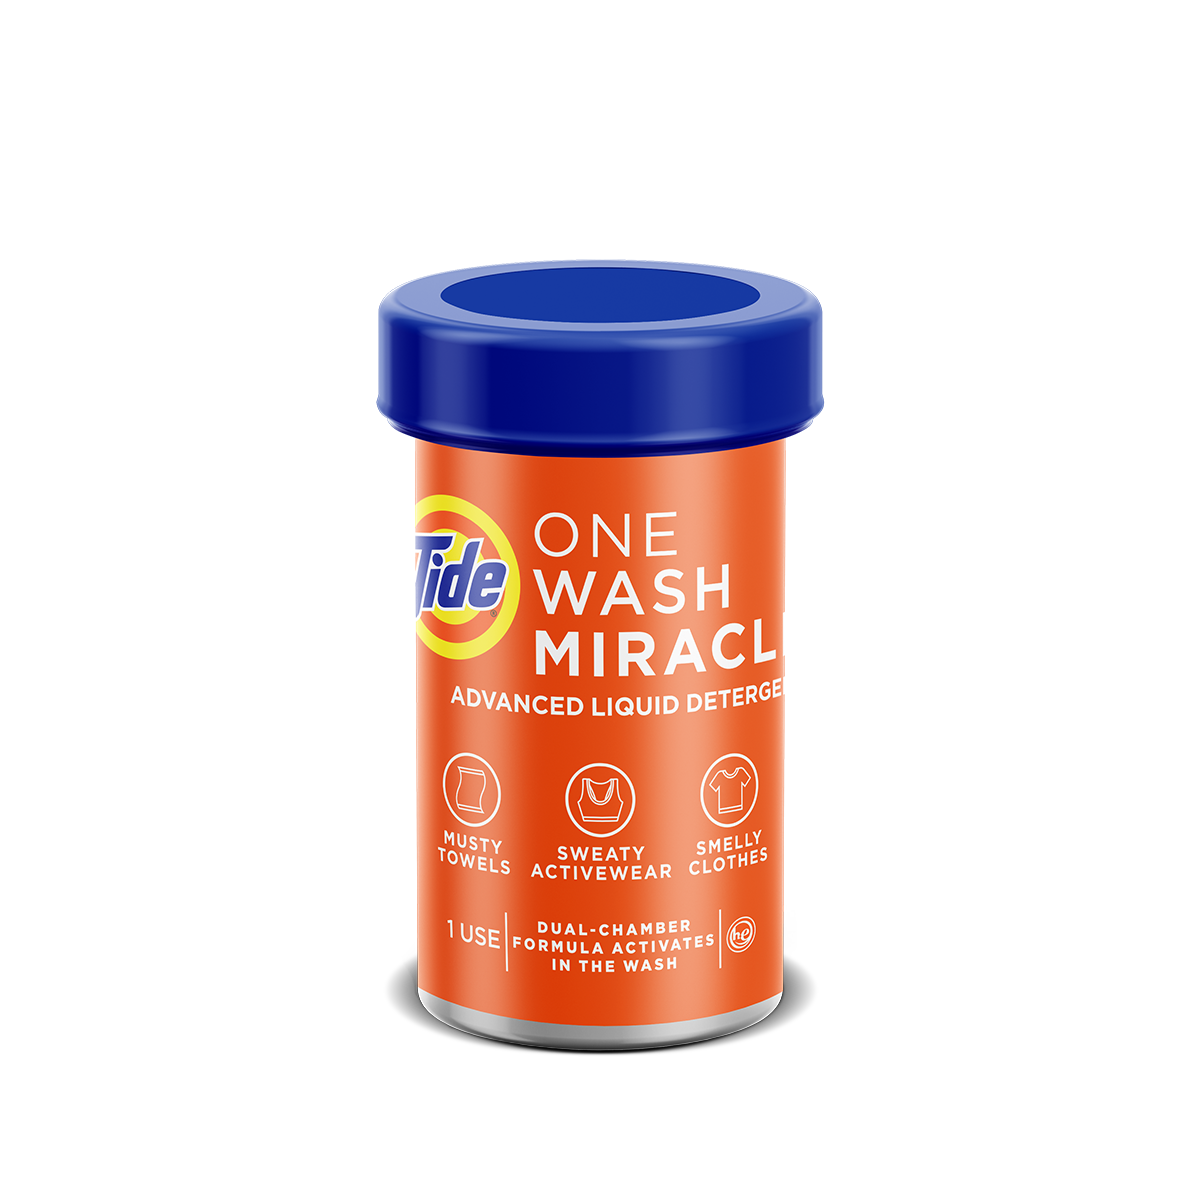 TideOne Wash Miracle- Powerful Deep-Cleaning Laundry Solution